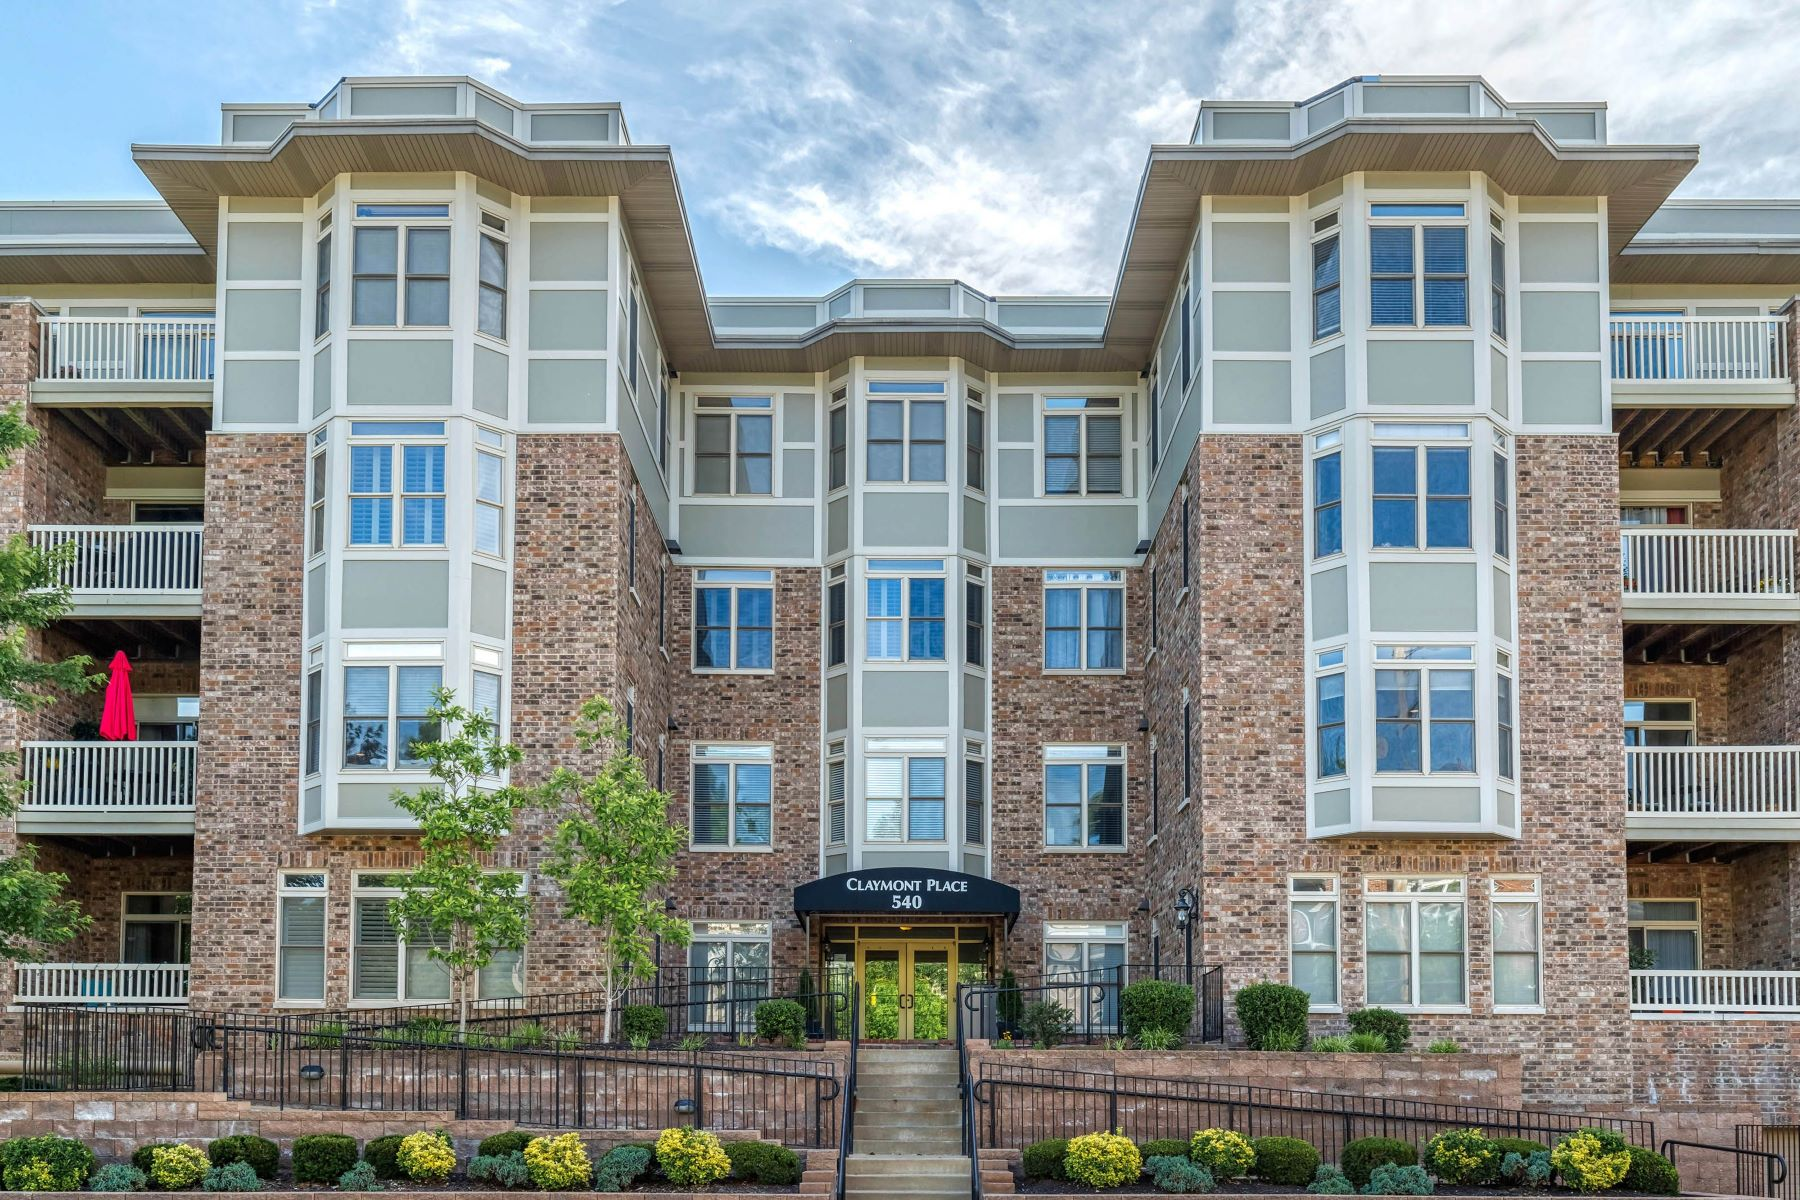 Condominiums for Sale at Popular Claymont Place Condominium 540 North and South Road, #104, University City, Missouri 63130 United States